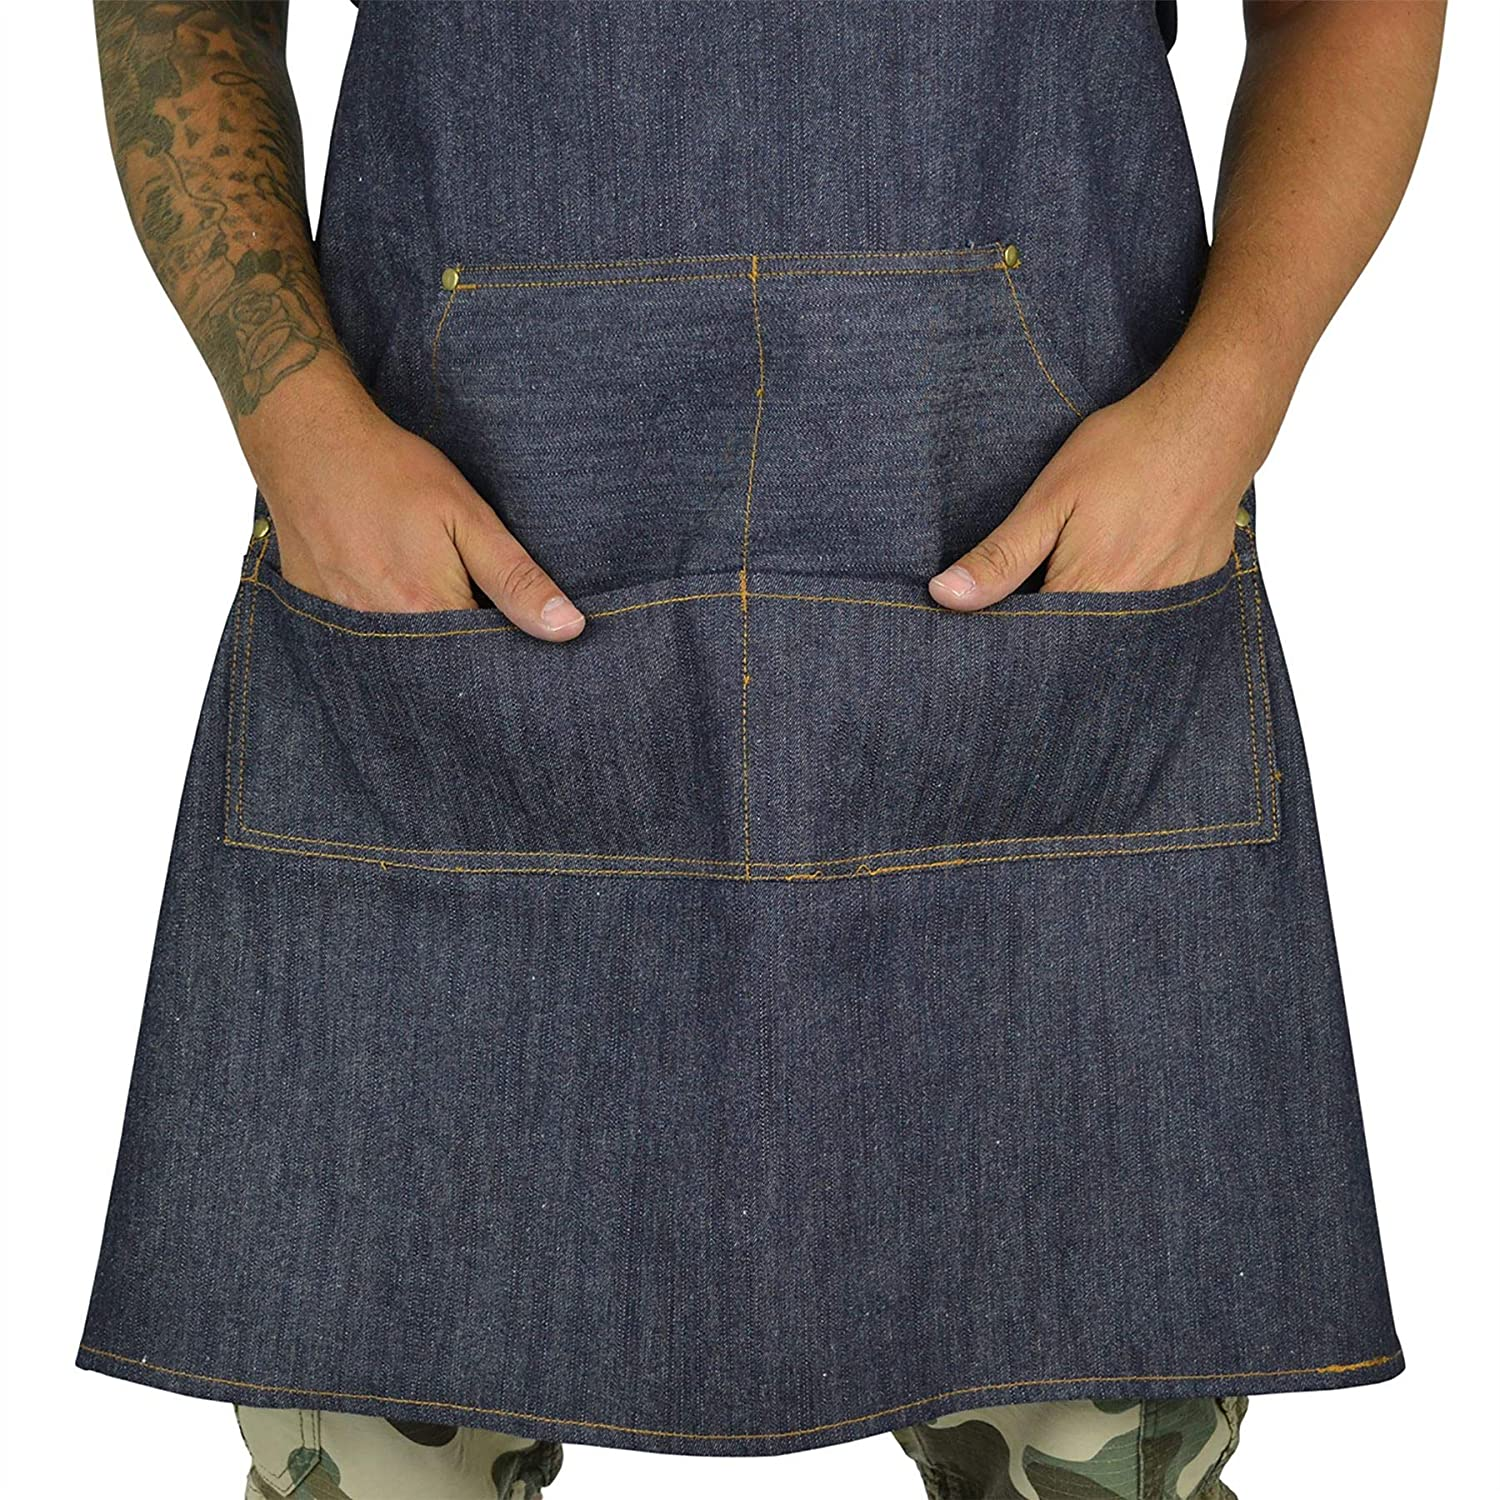 Bang Tidy Clothing Denim BBQ Apron /& Meat Shredding Claws Accessories Gift Set Burger Me Up